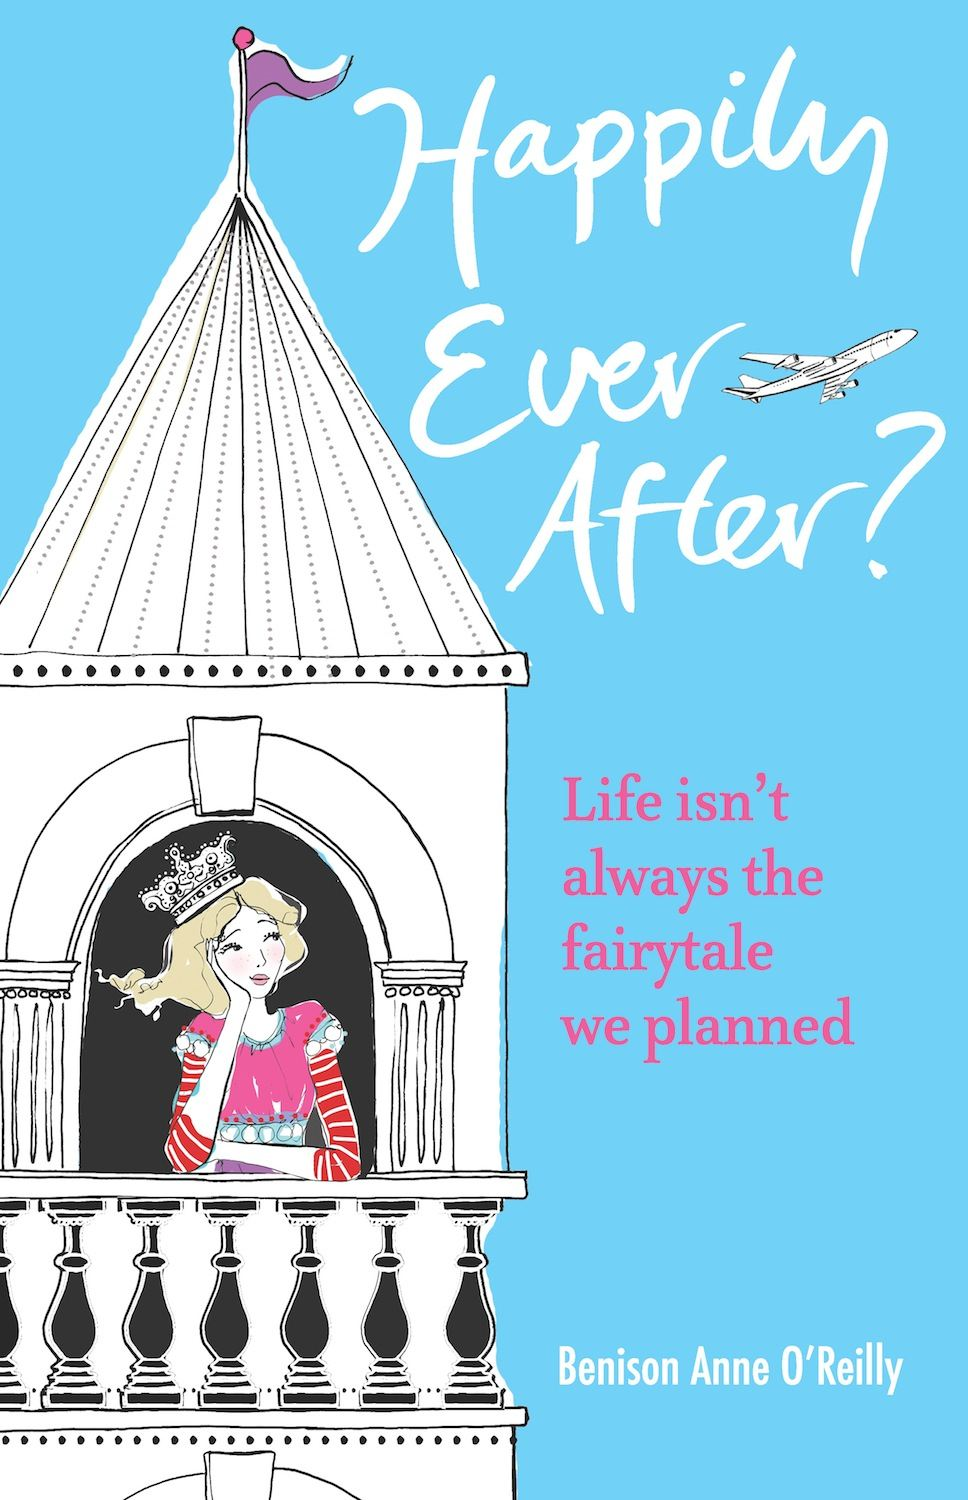 Happily Ever After? Life isn't always the fairytale we planned